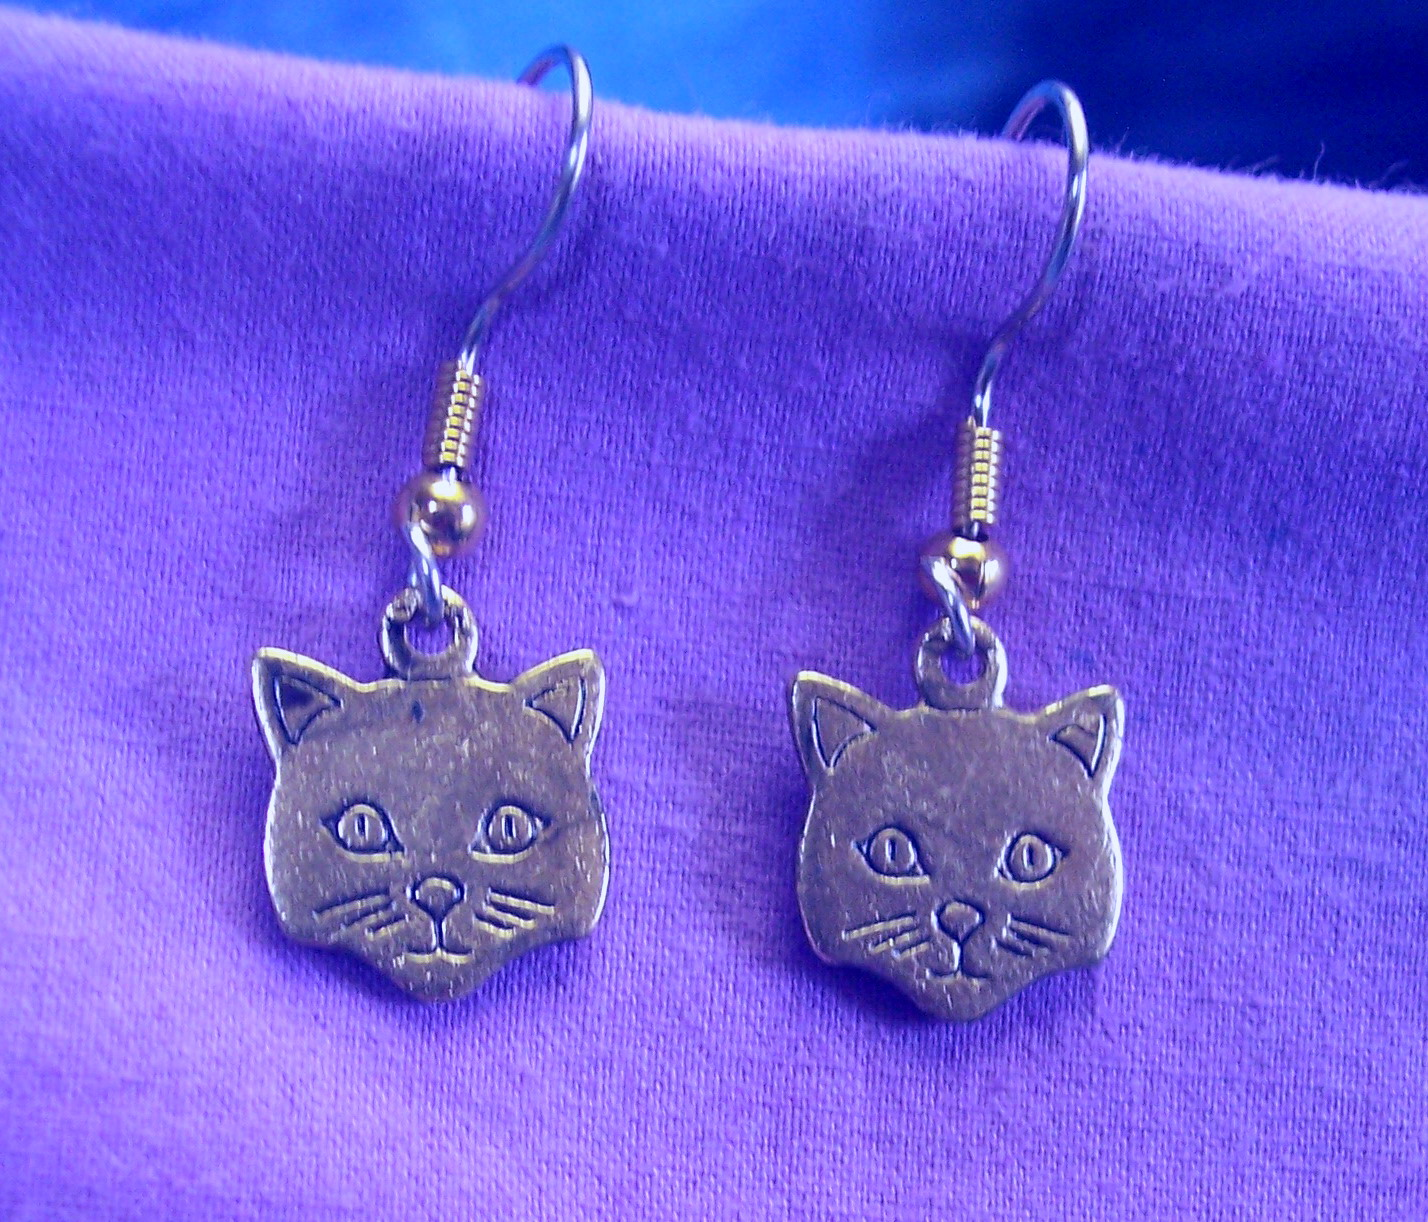 03212xe Cartoon Kitty Face Earrings With Surgical Steel Wires 1/2u2033 X 1/2u2033  Solid Lead Free Pewter $15.00